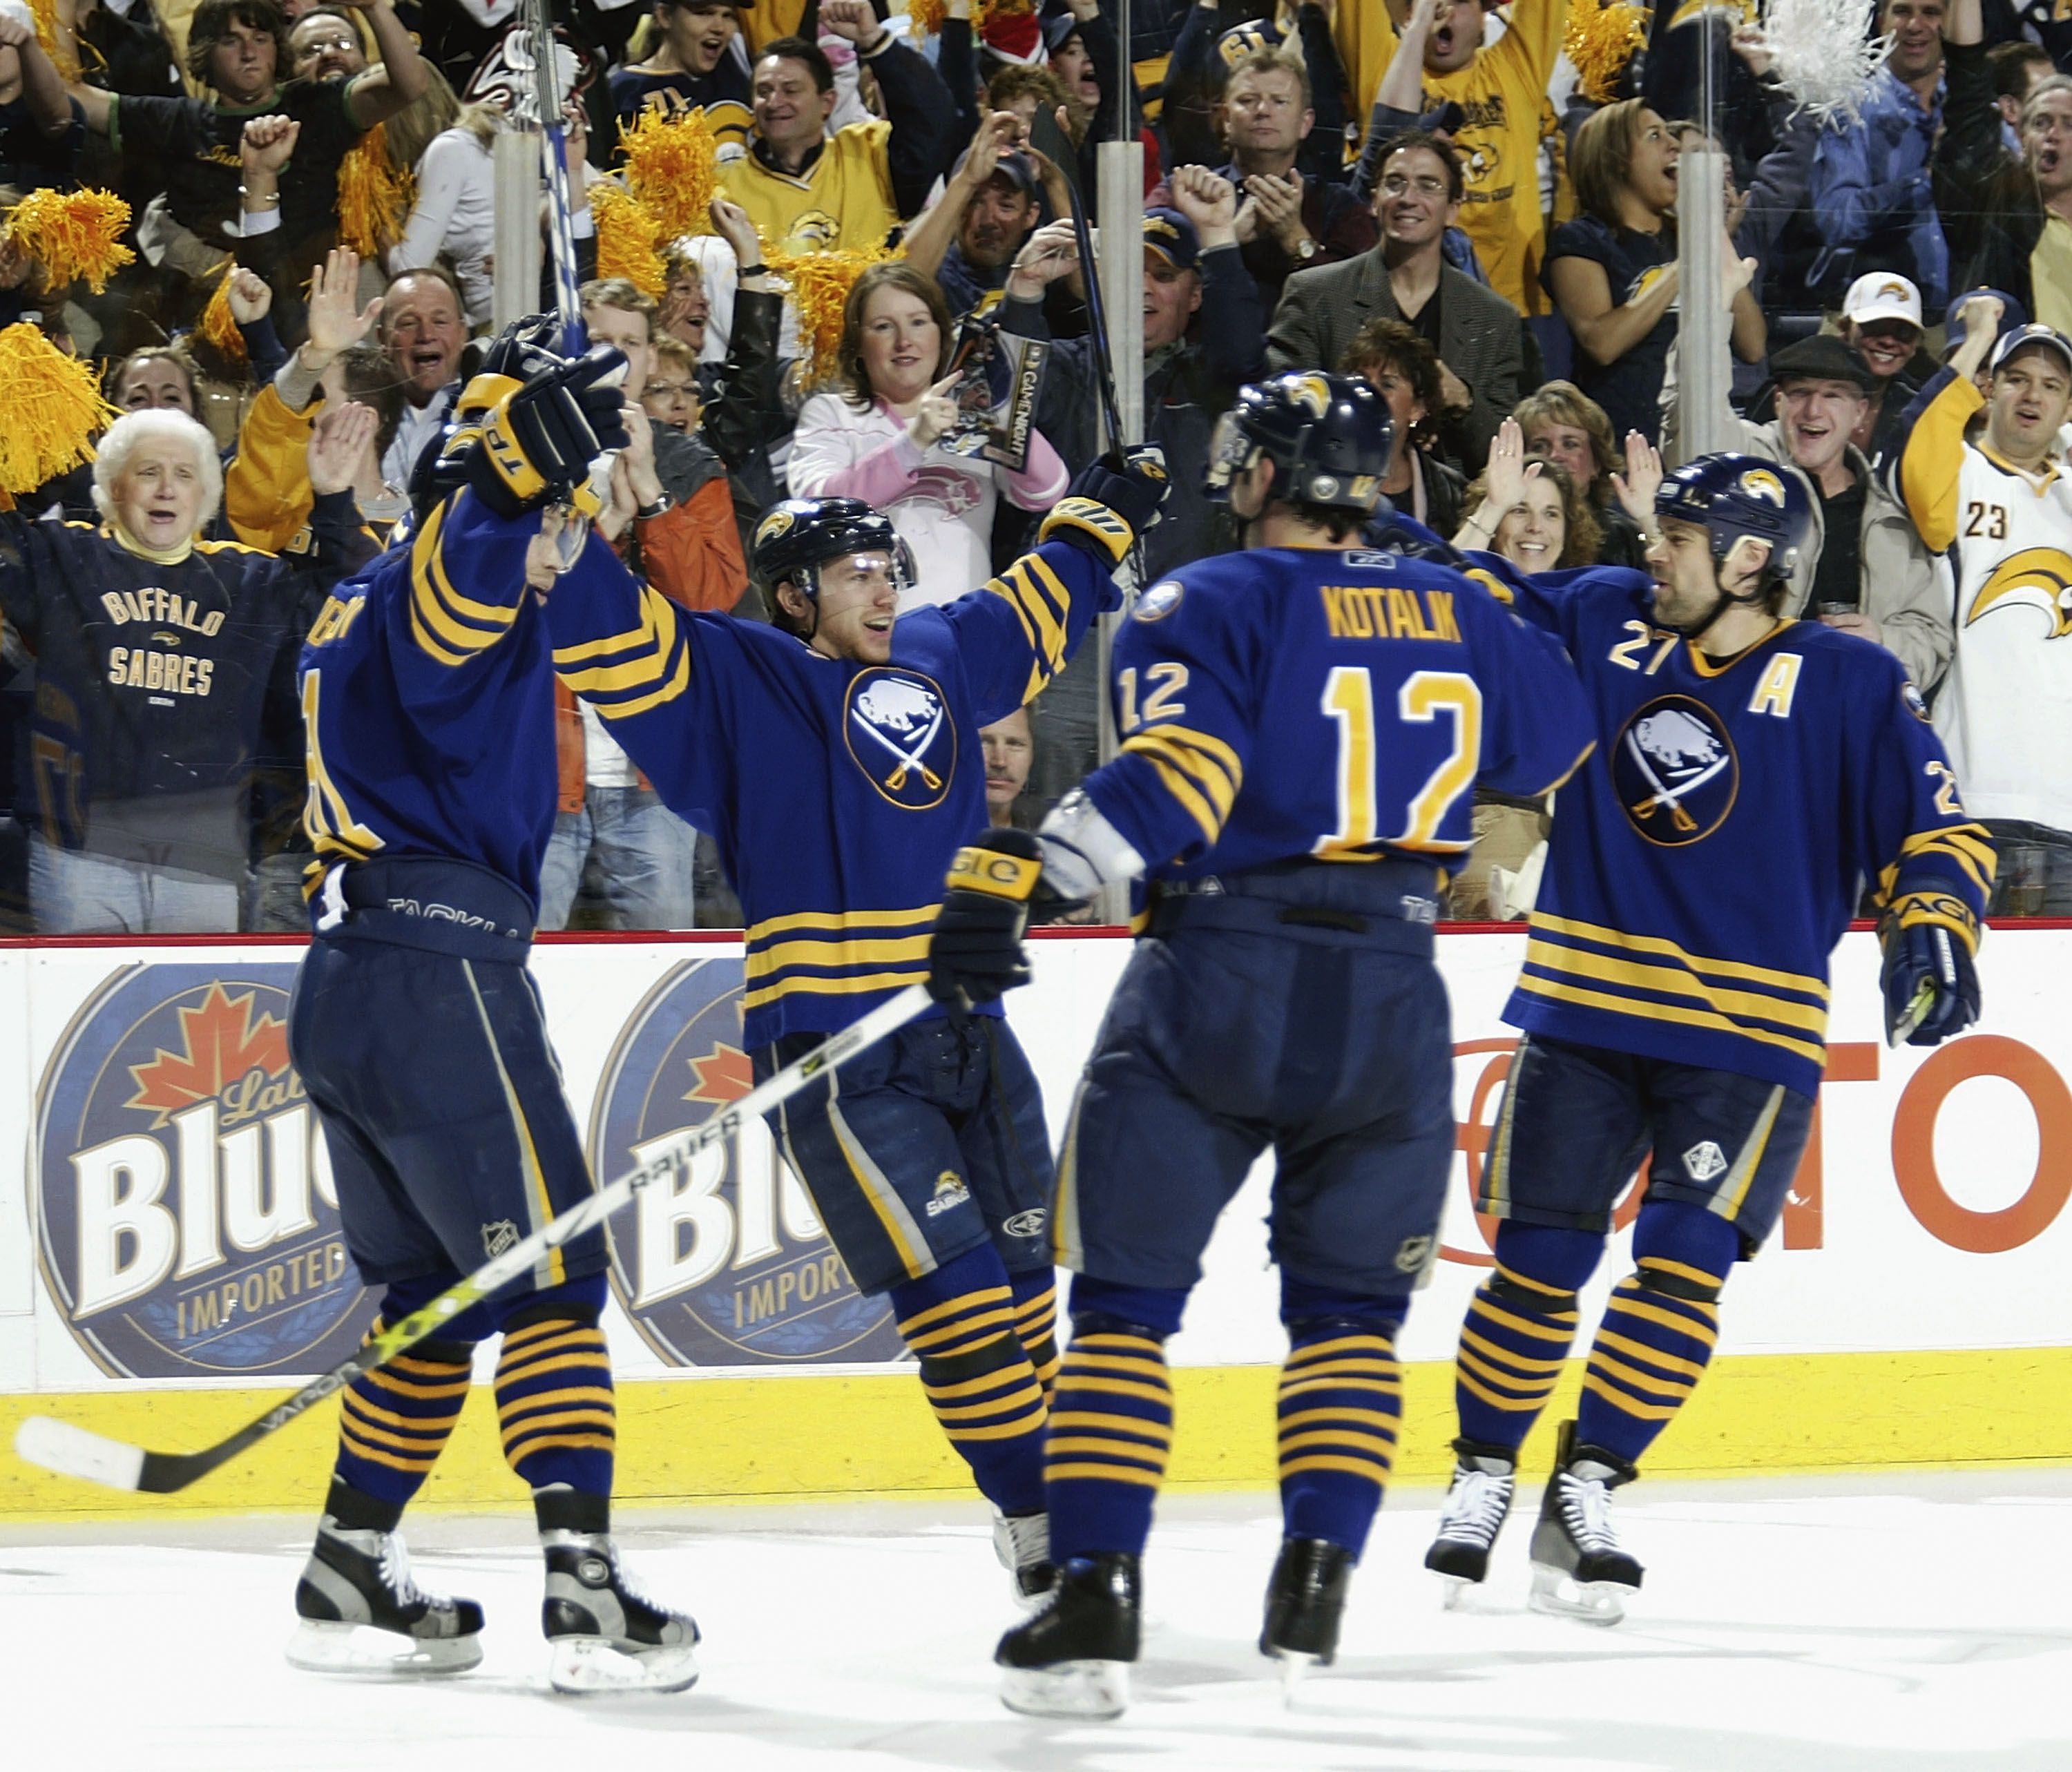 brand new 4ef3d 074c8 Sabres announce a return to royal blue | WGR 550 SportsRadio